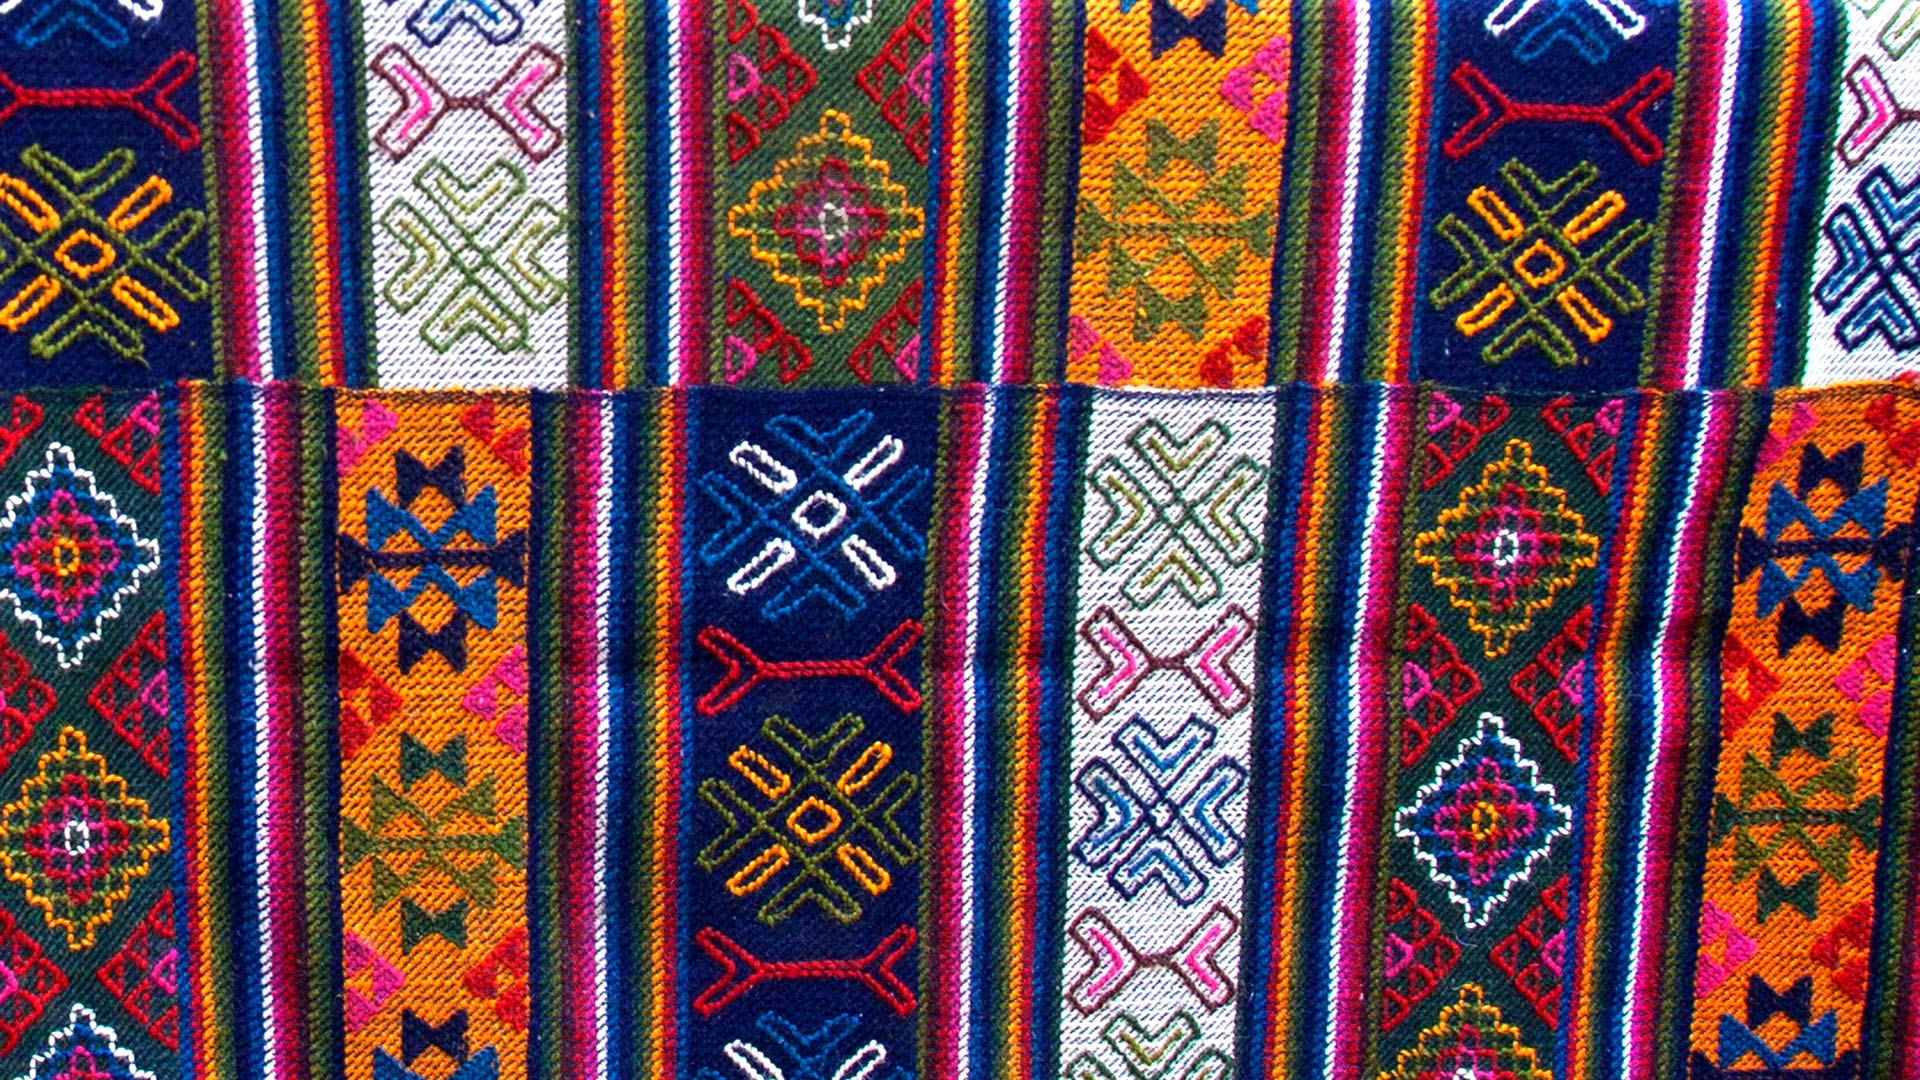 Textiles from the Bumthang region of Bhutan